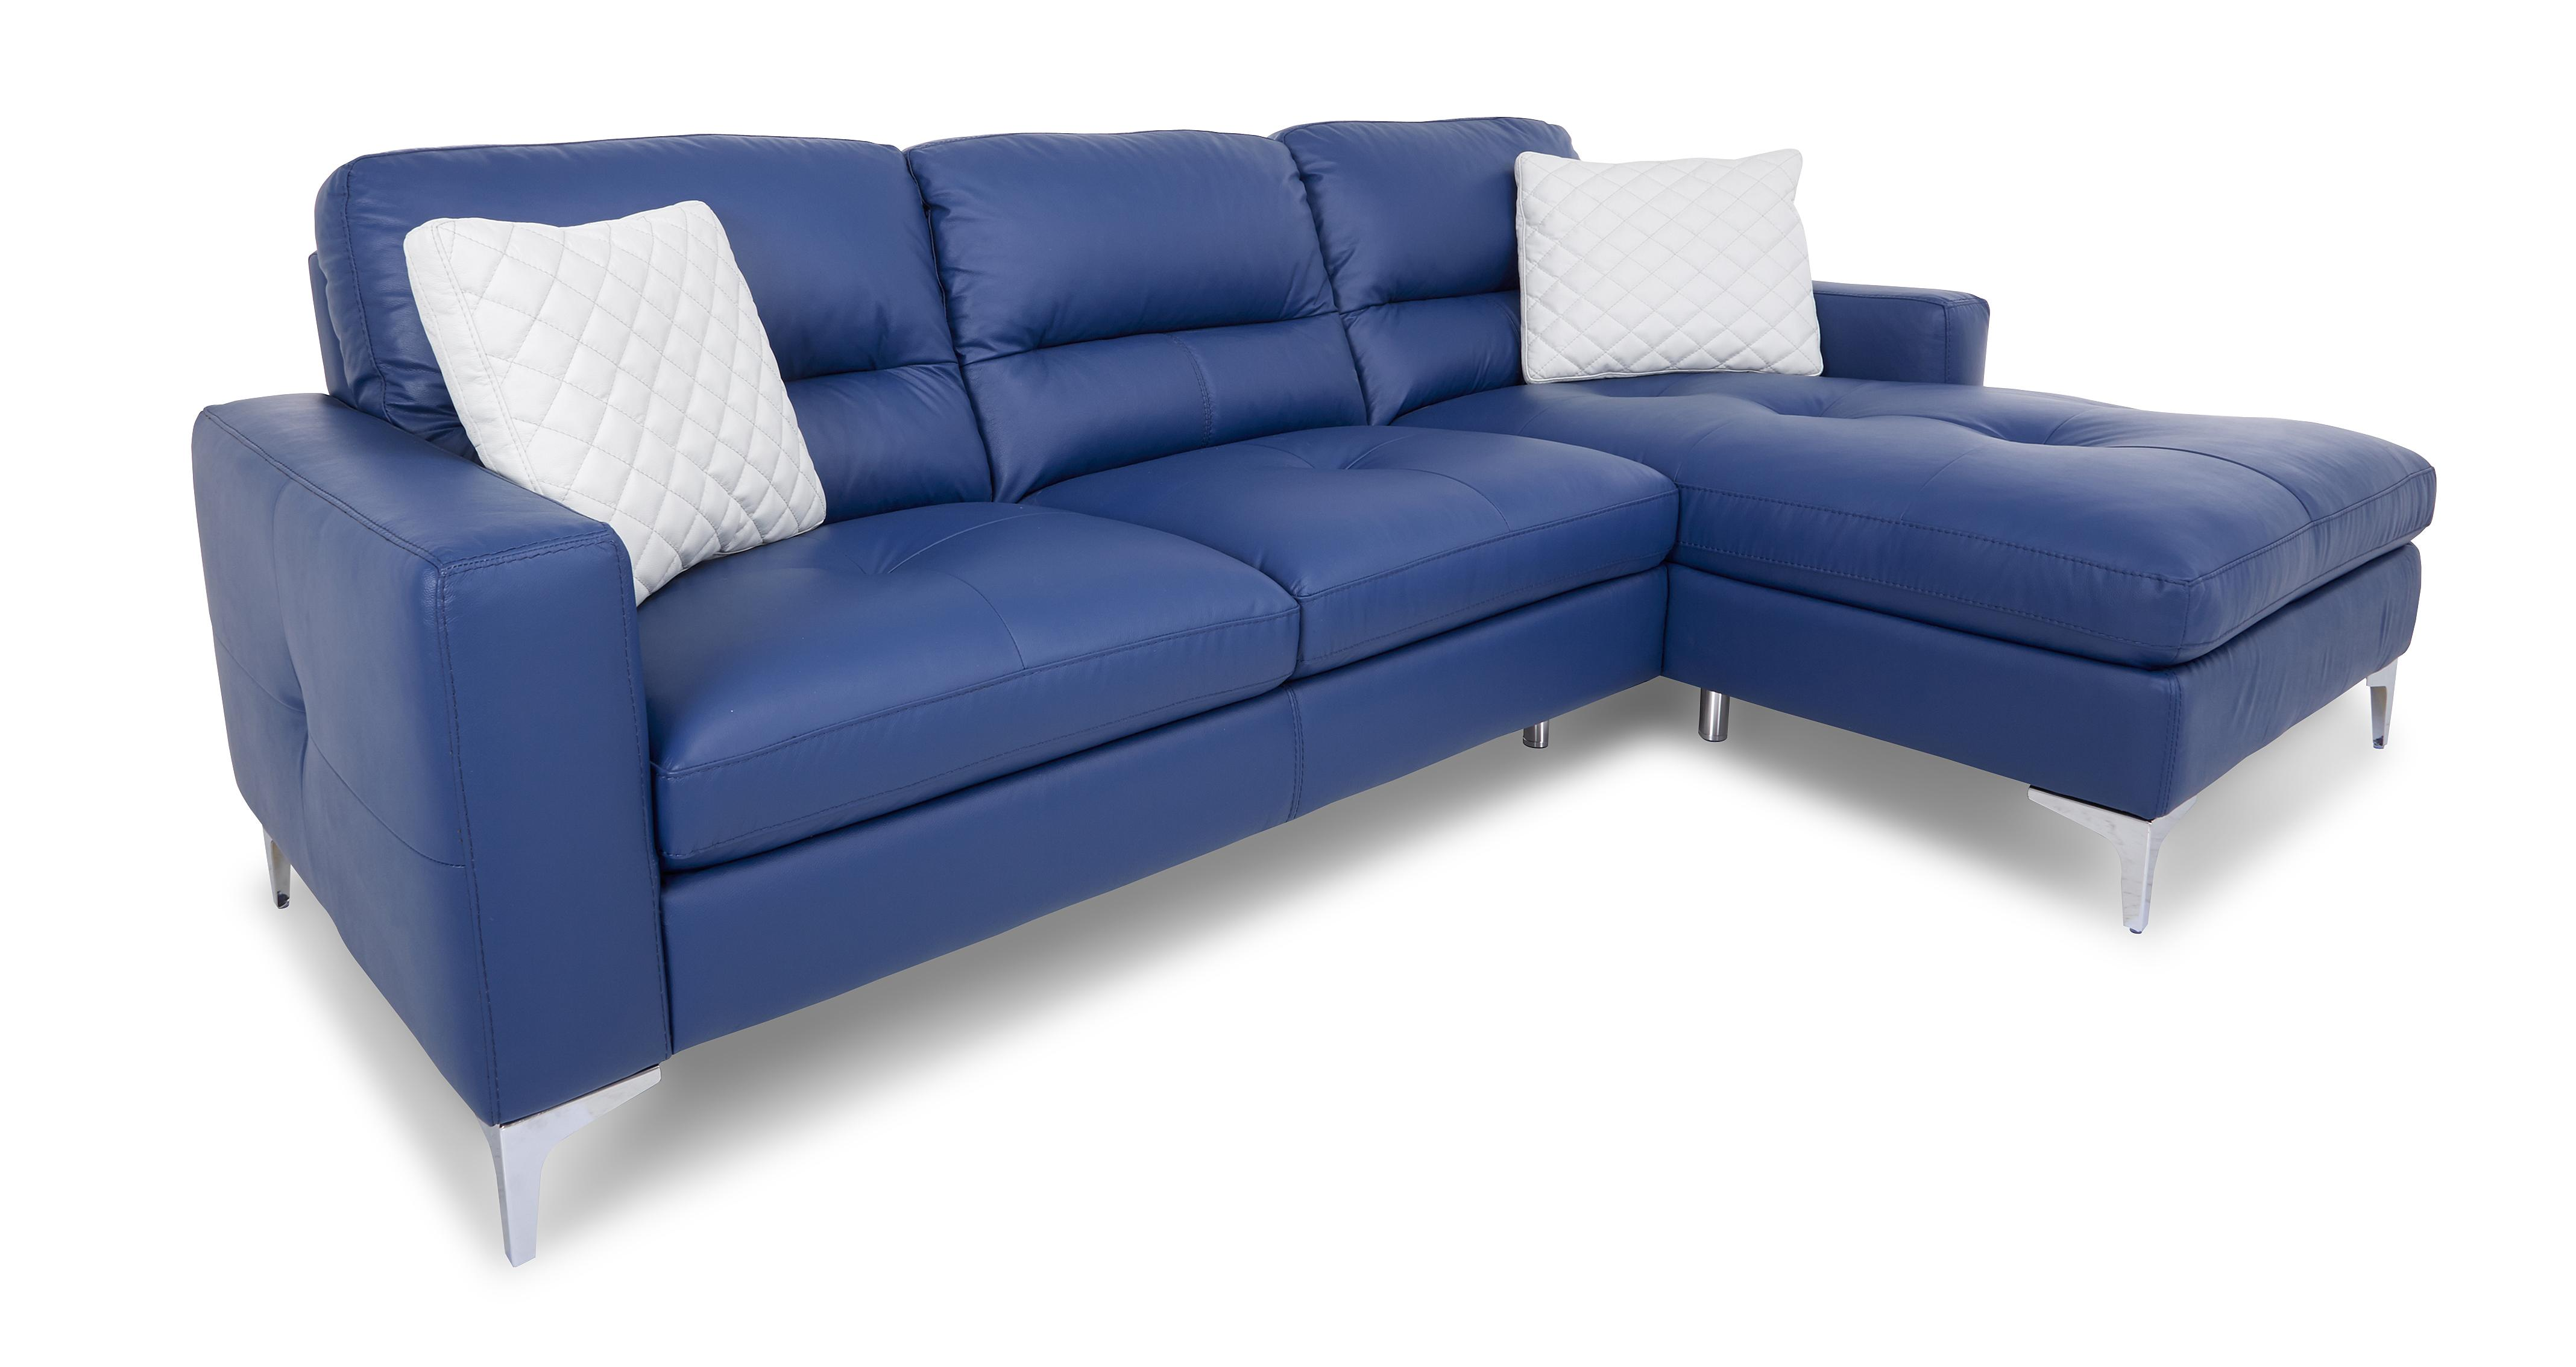 DFS Klein Blue Leather Sofa Set Inc Chaise, Chair, Swivel Chair & 2x  Footstools